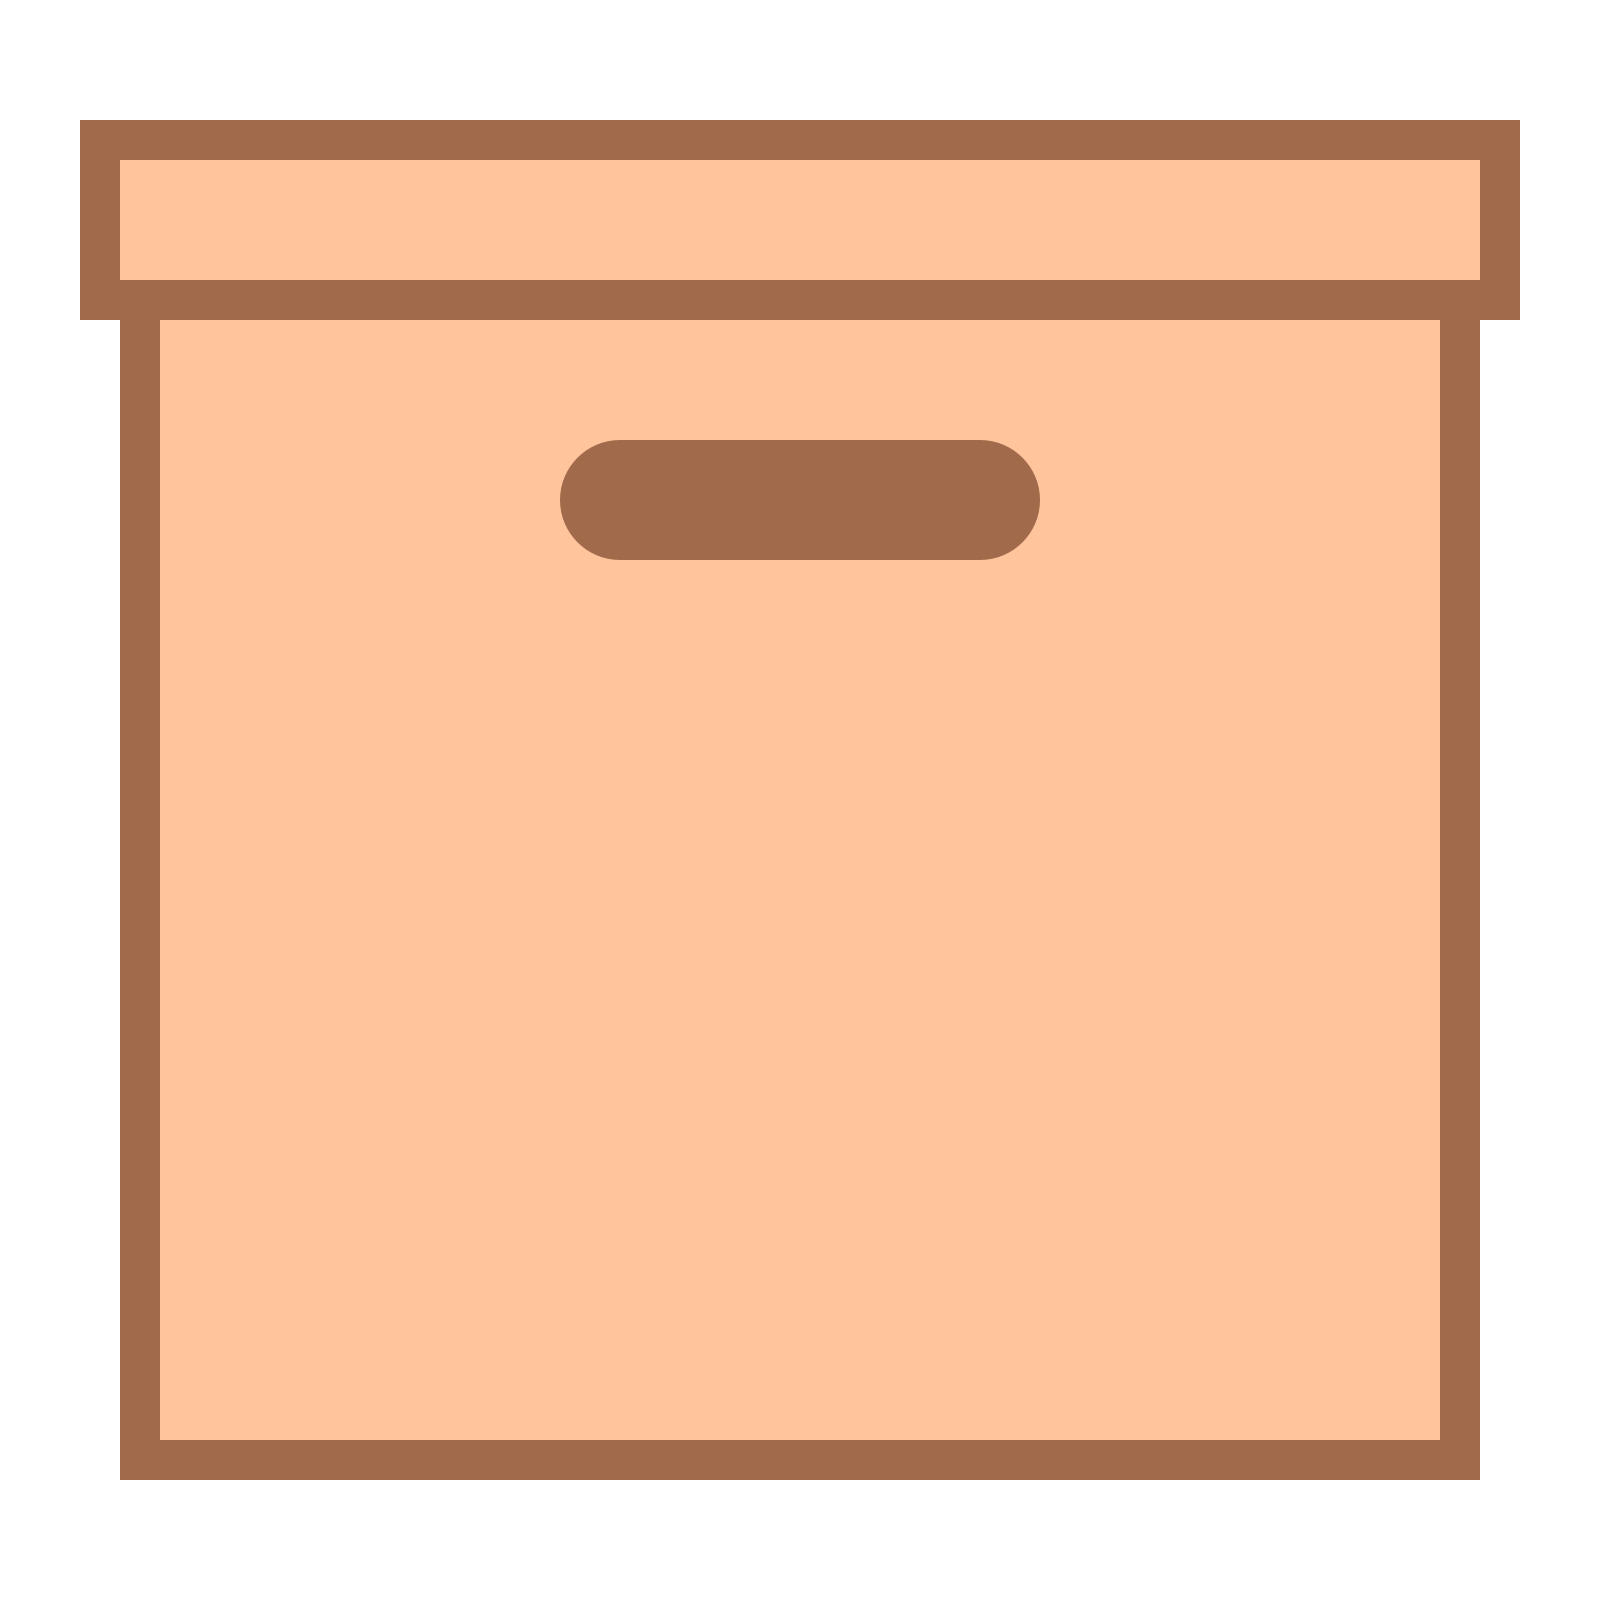 Square boxes png. Box